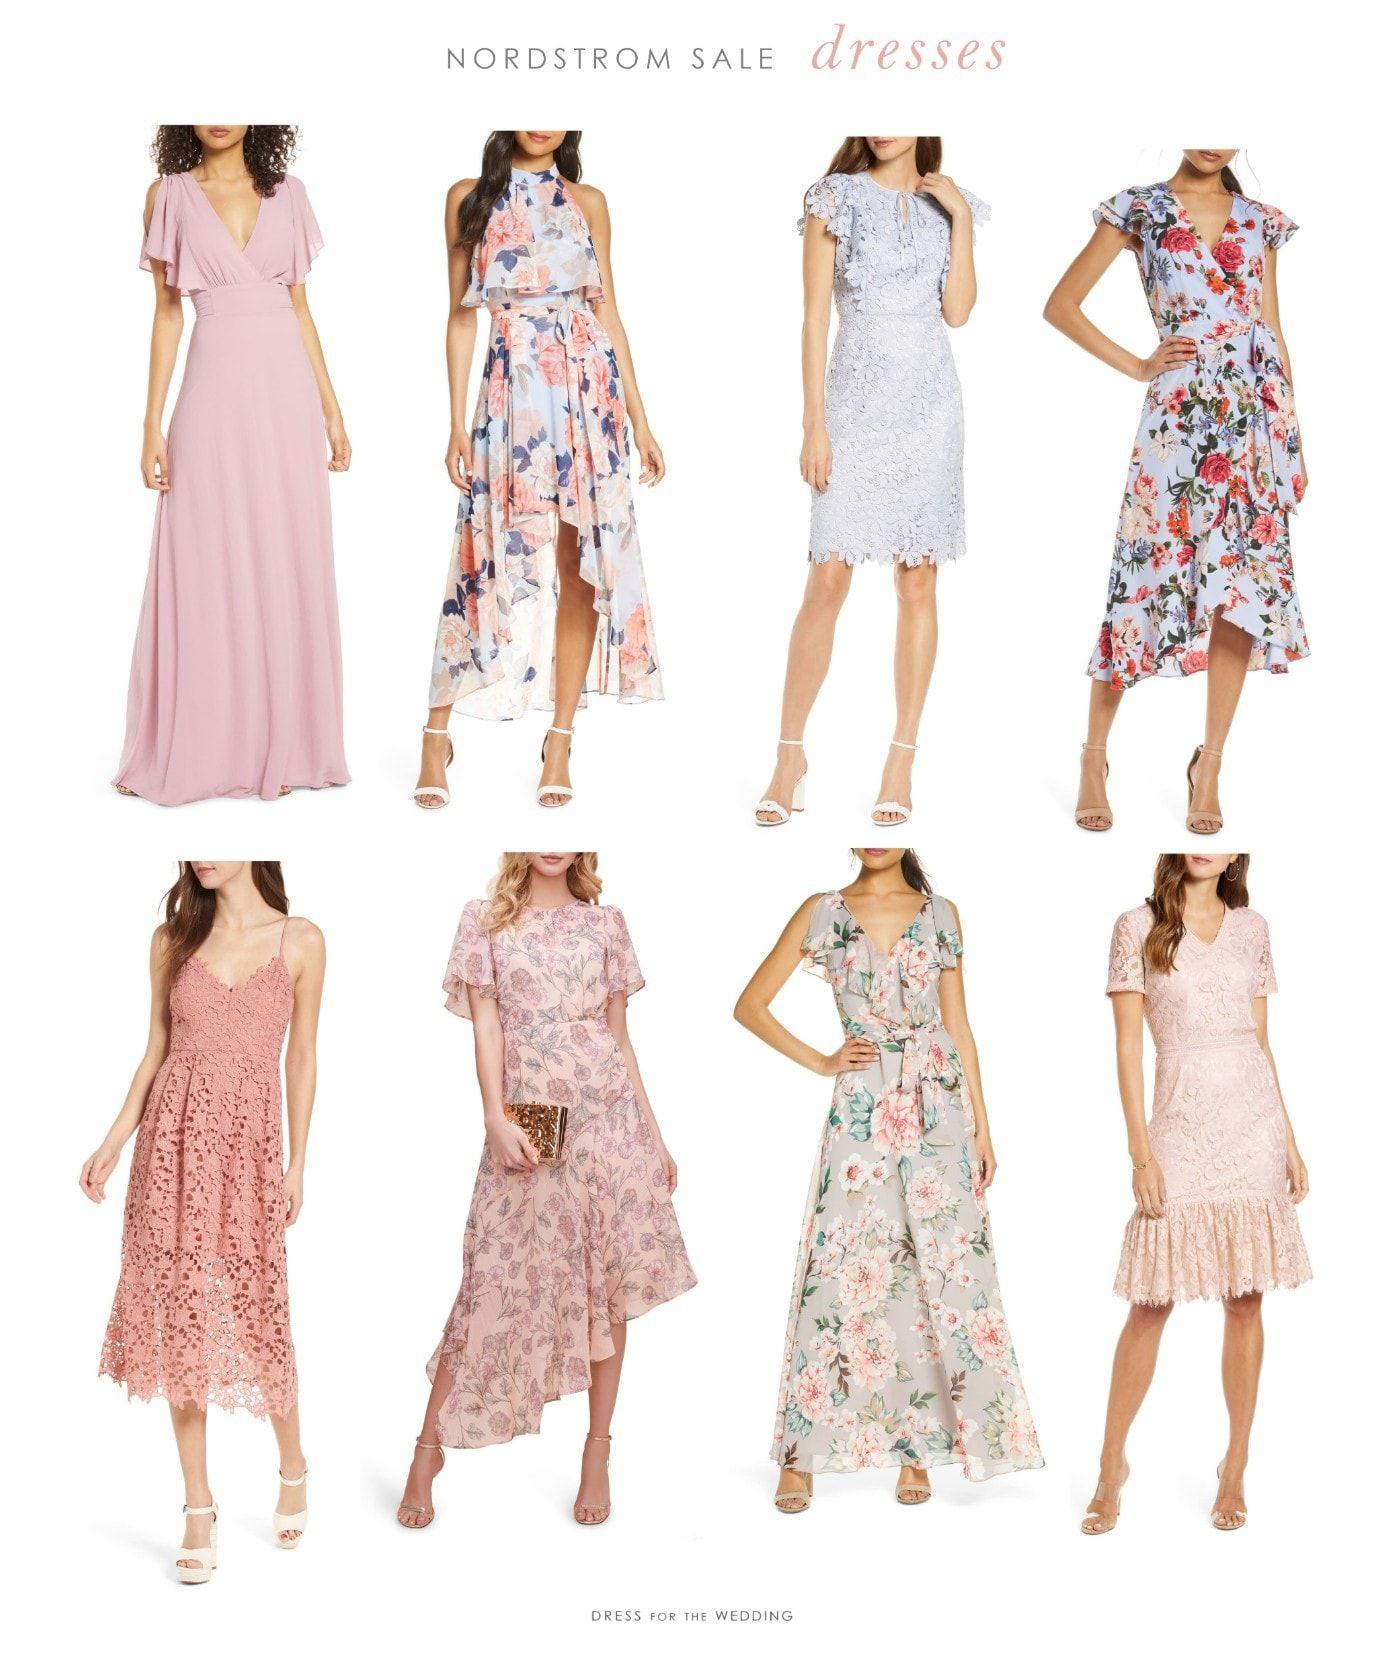 Dresses From The Nordstrom Spring Sale 2020 Dress For The Wedding In 2020 Wedding Guest Outfit Dresses Spring Attire